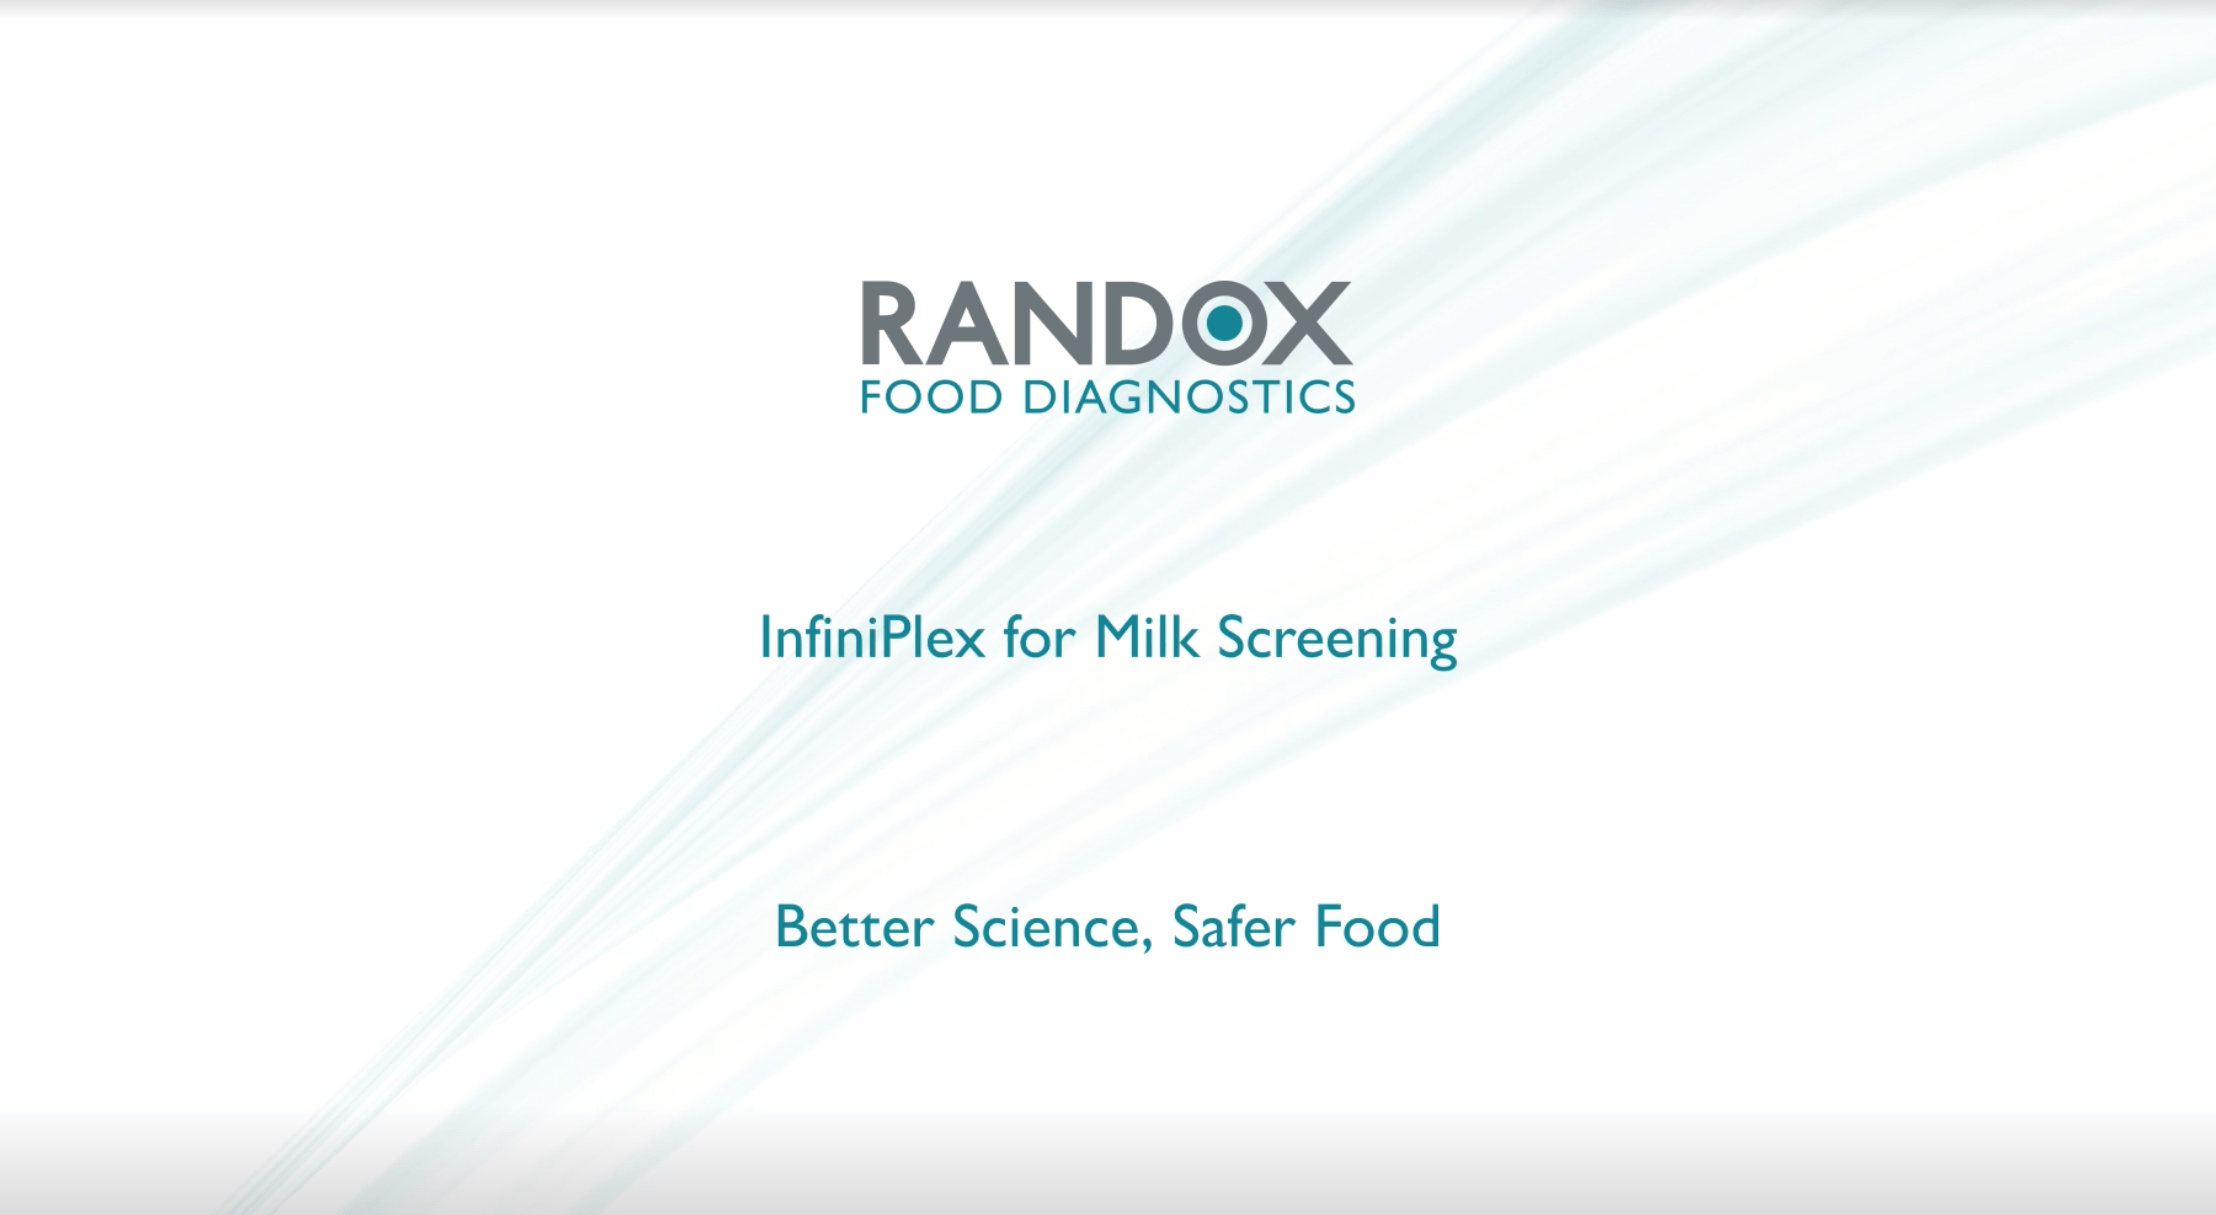 Randox Food Diagnostics -Biochip Array Technology Video